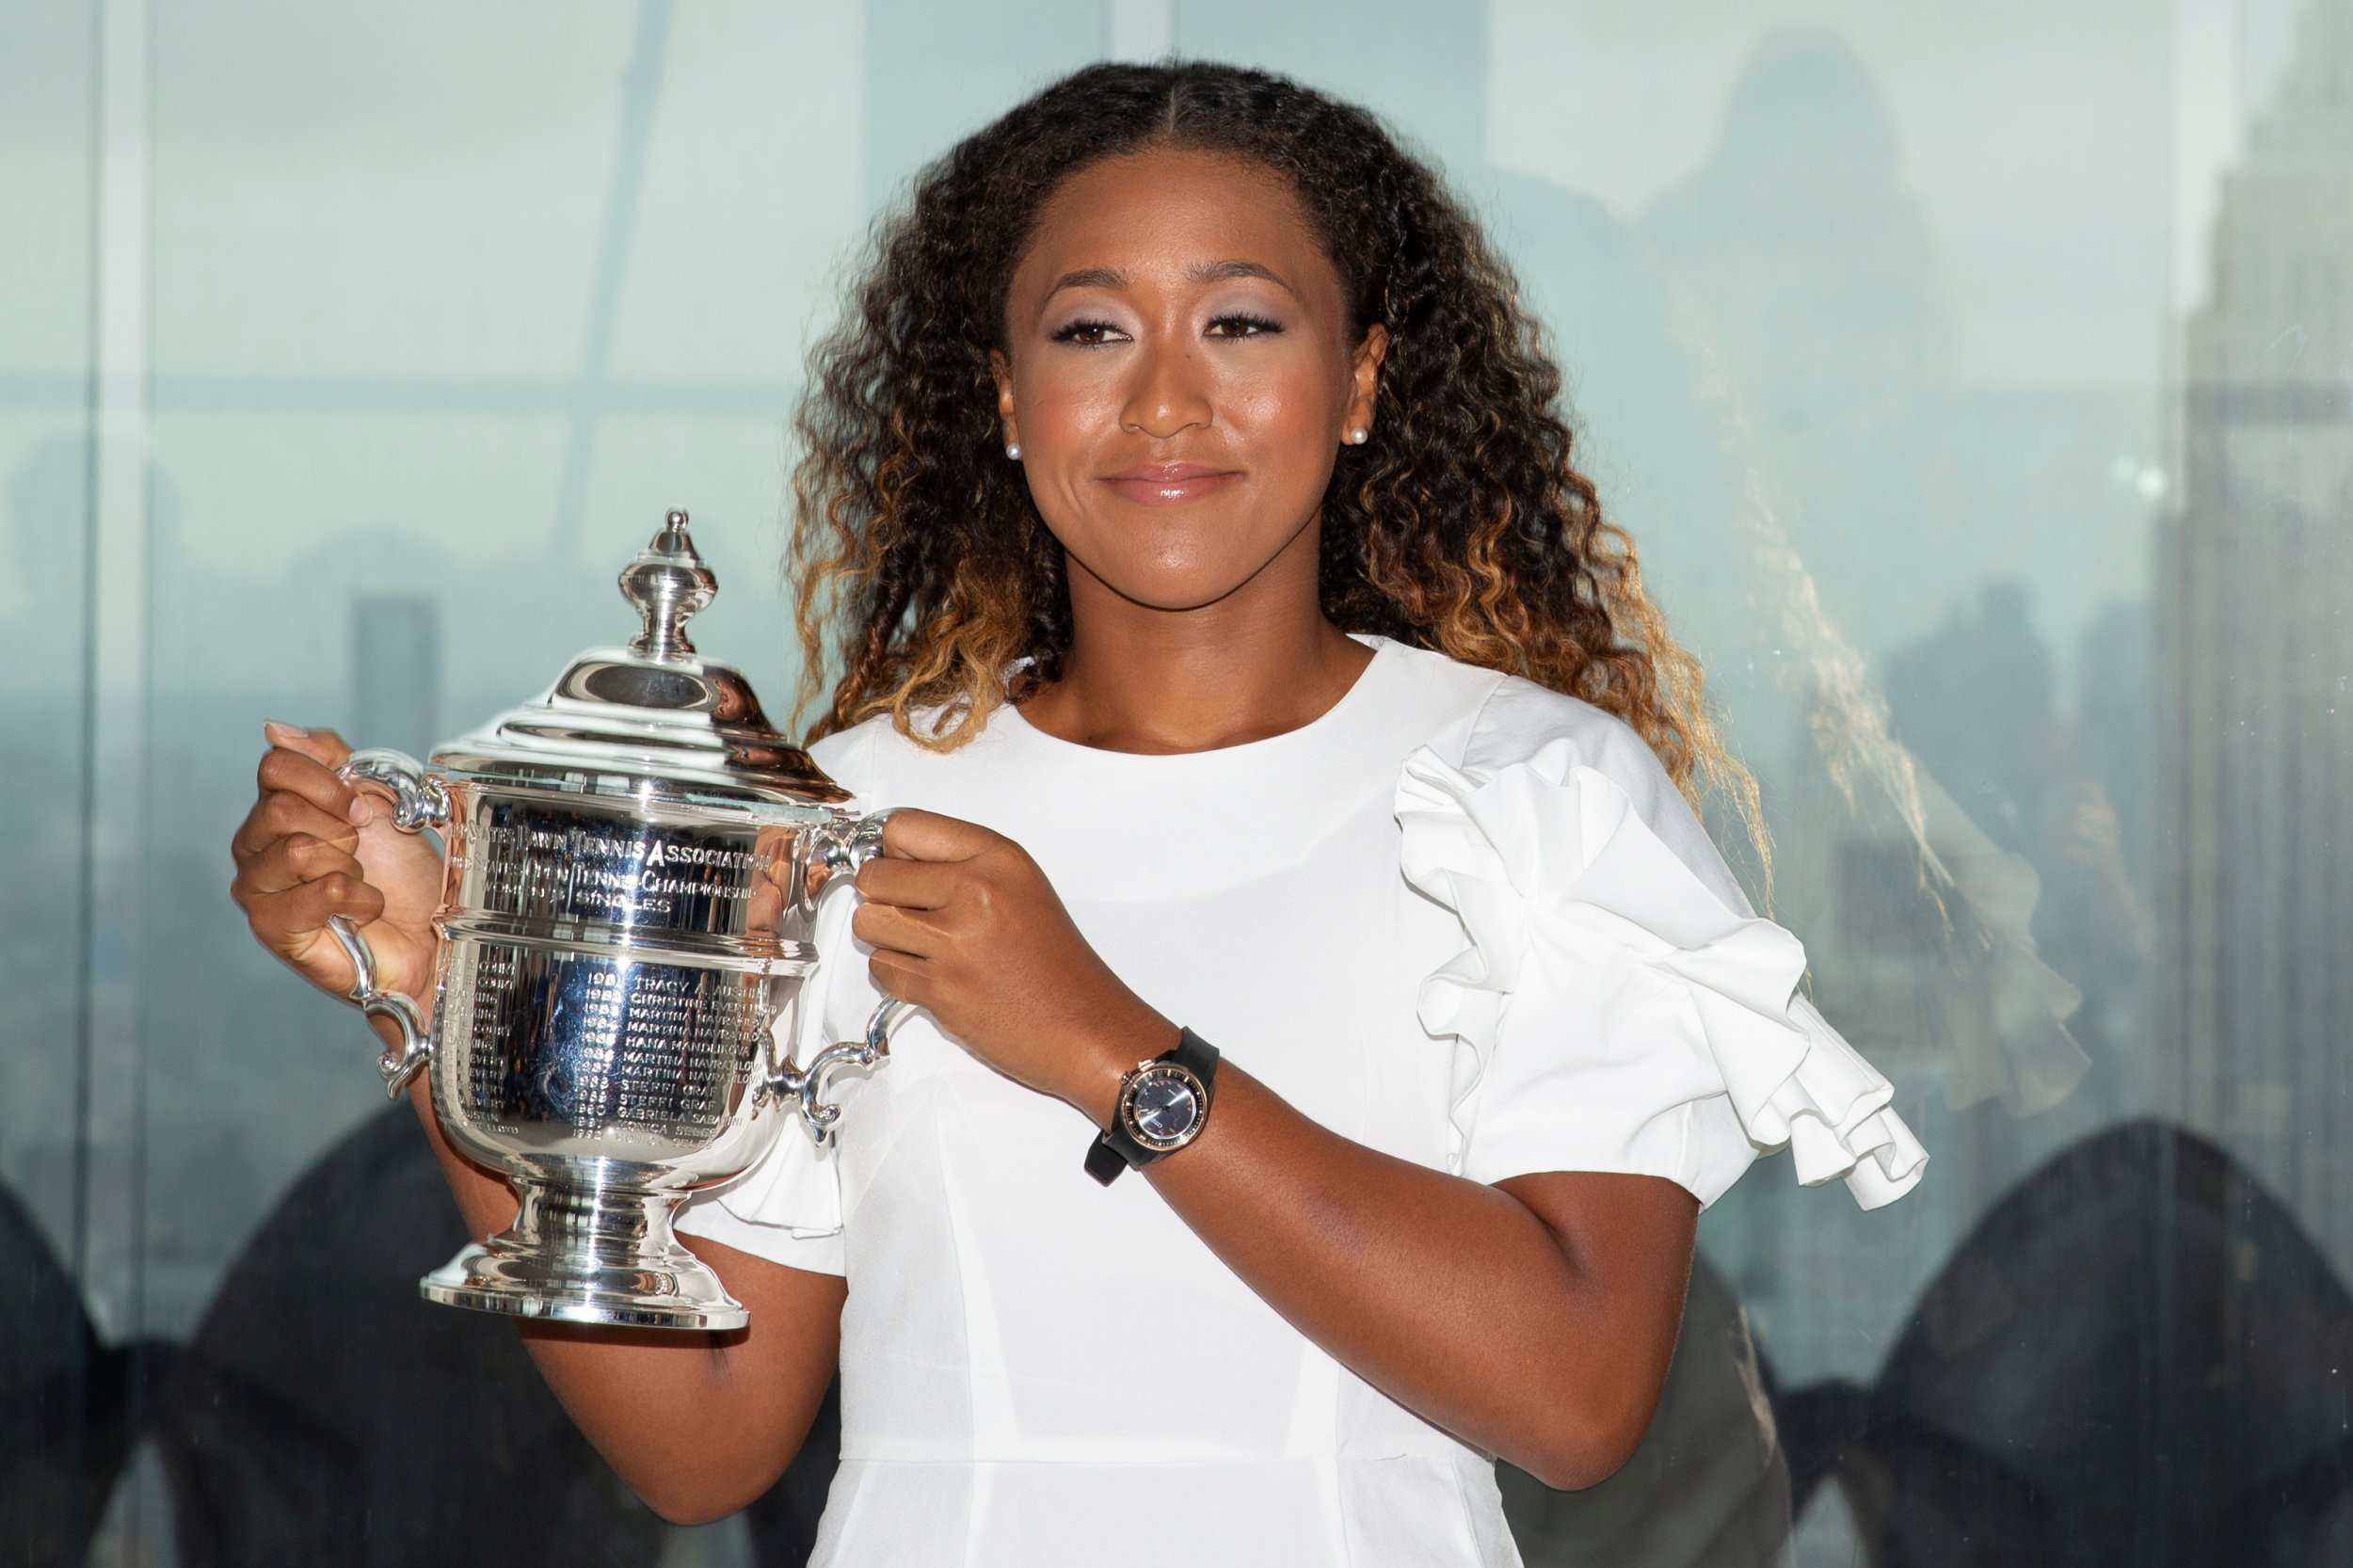 target video game chair steel hd image naomi osaka was 'sad' about crowd 'booing' after defeating serena williams